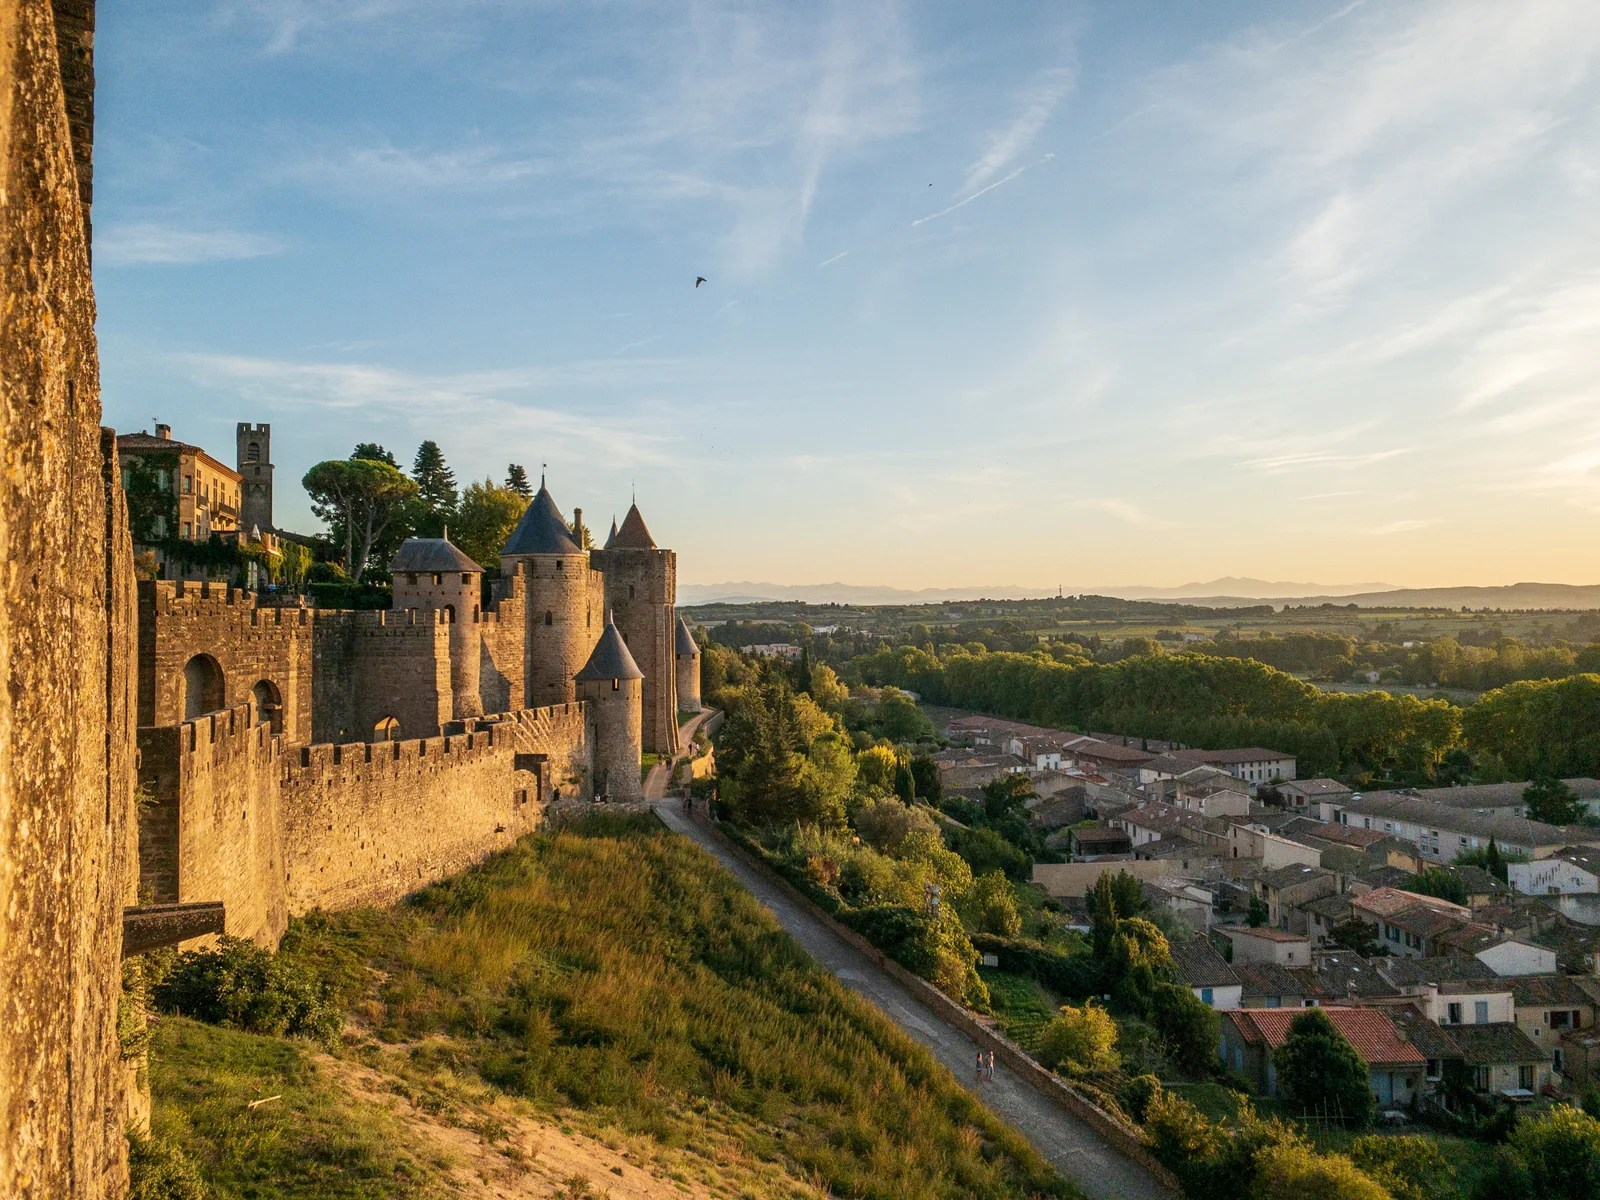 The city walls of Carcassonne, France. (Photo by FvanderVeer/Getty Images)